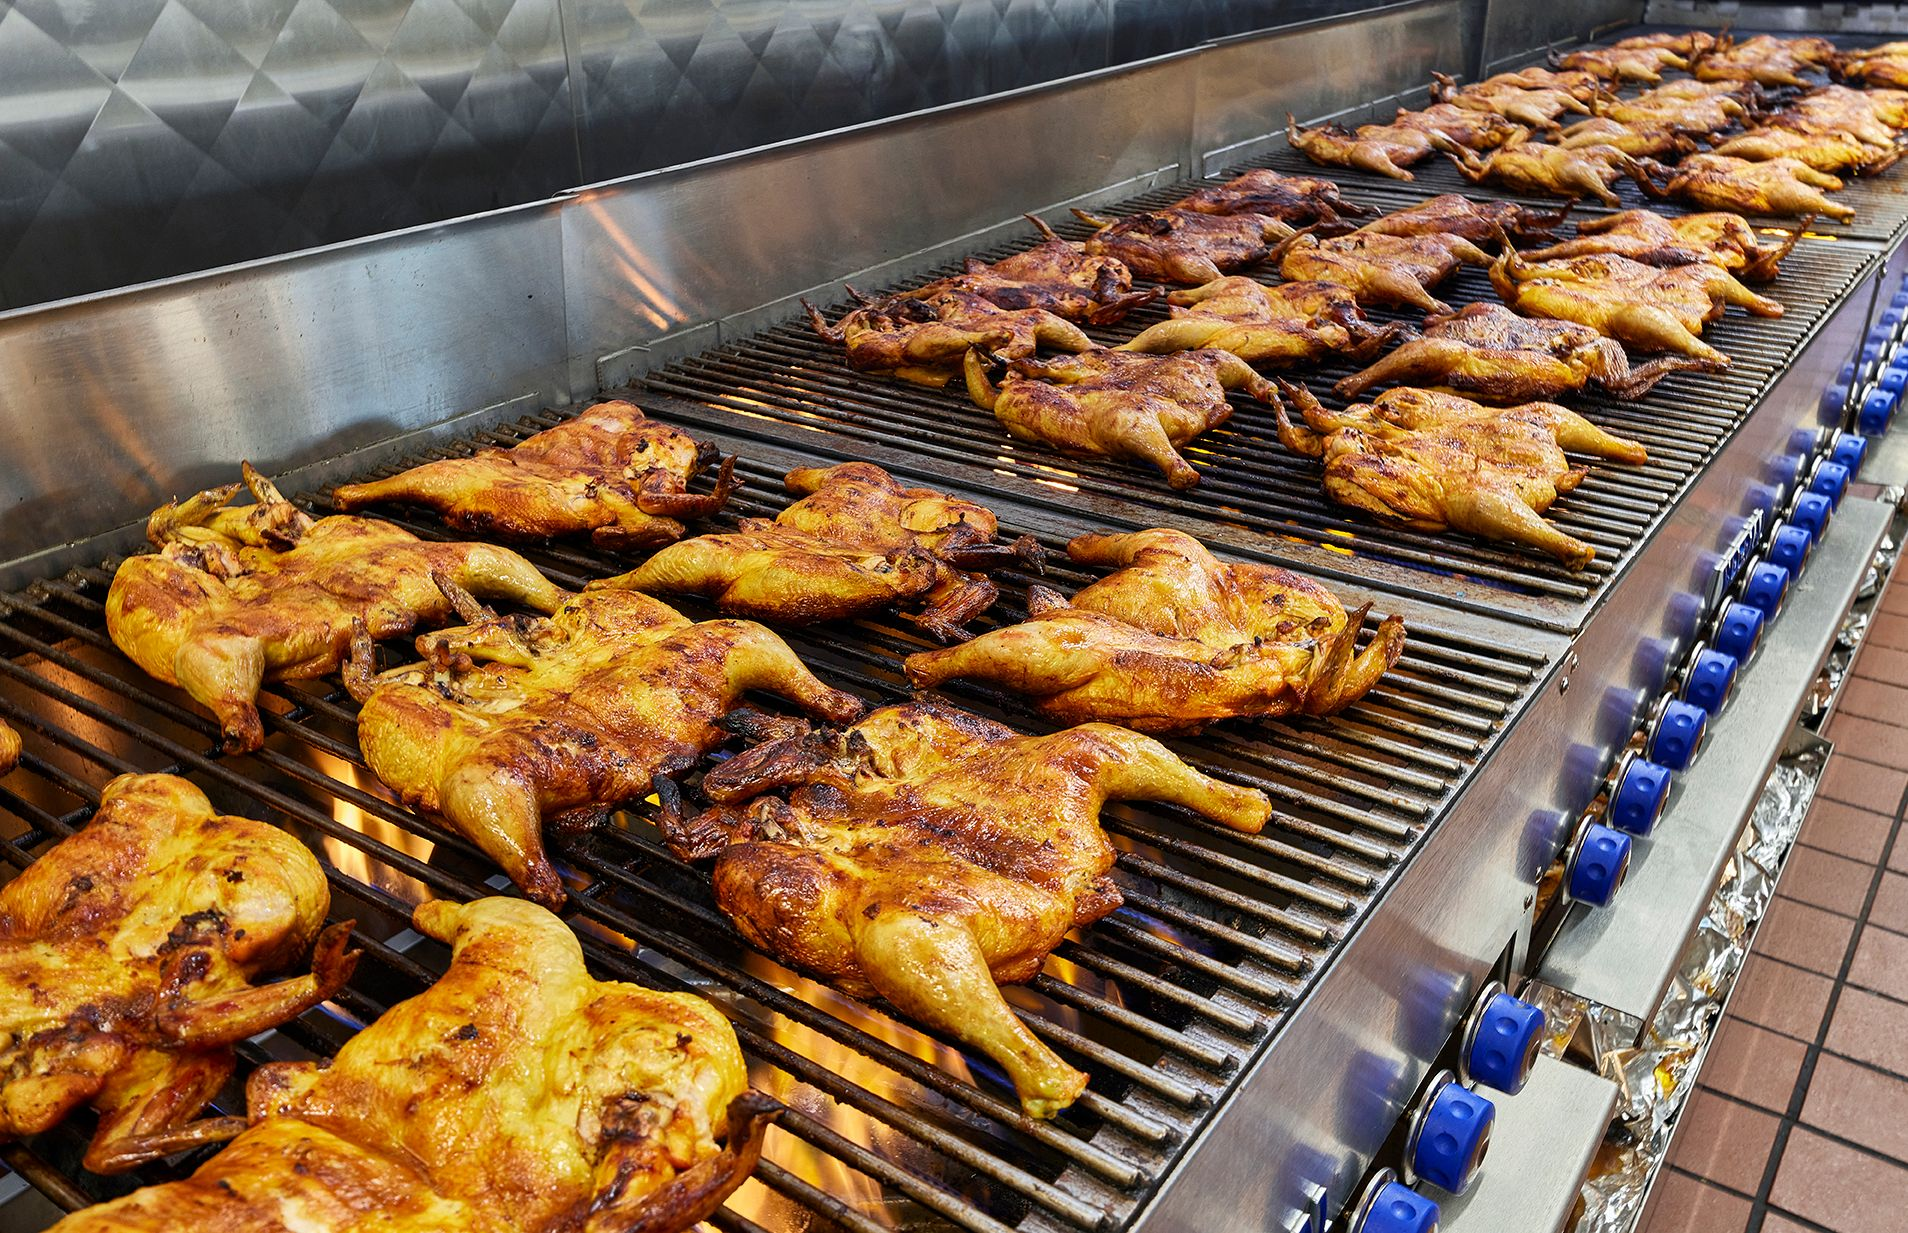 Chicken on the grill in the kitchen at an El Pollo Loco restaurant.